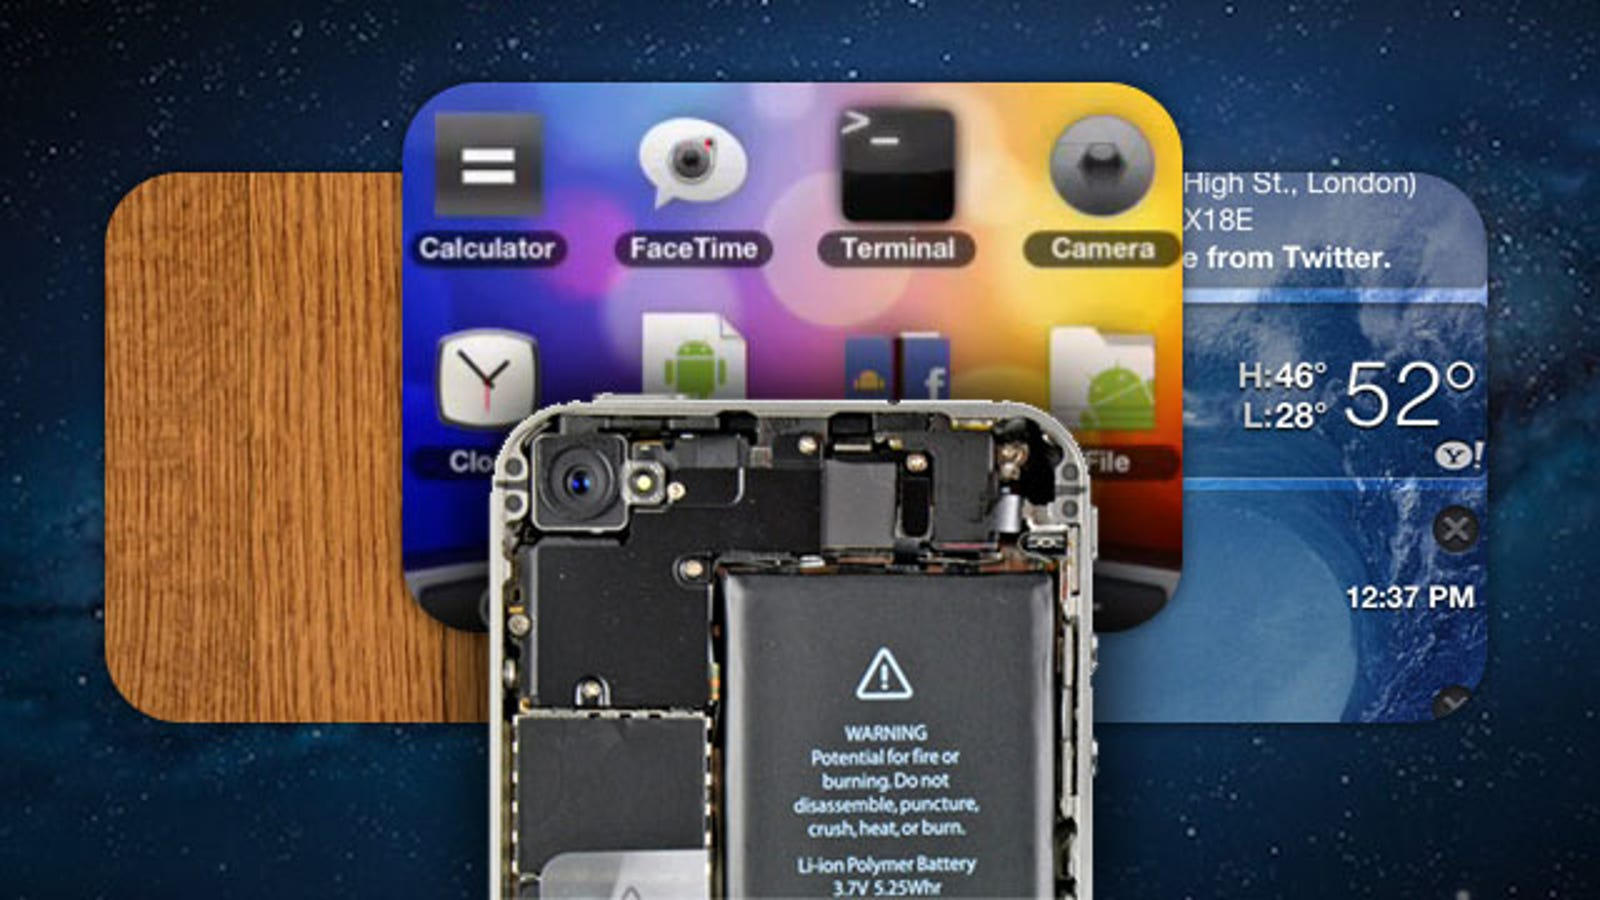 How to Customize Your iPhone, Inside and Out